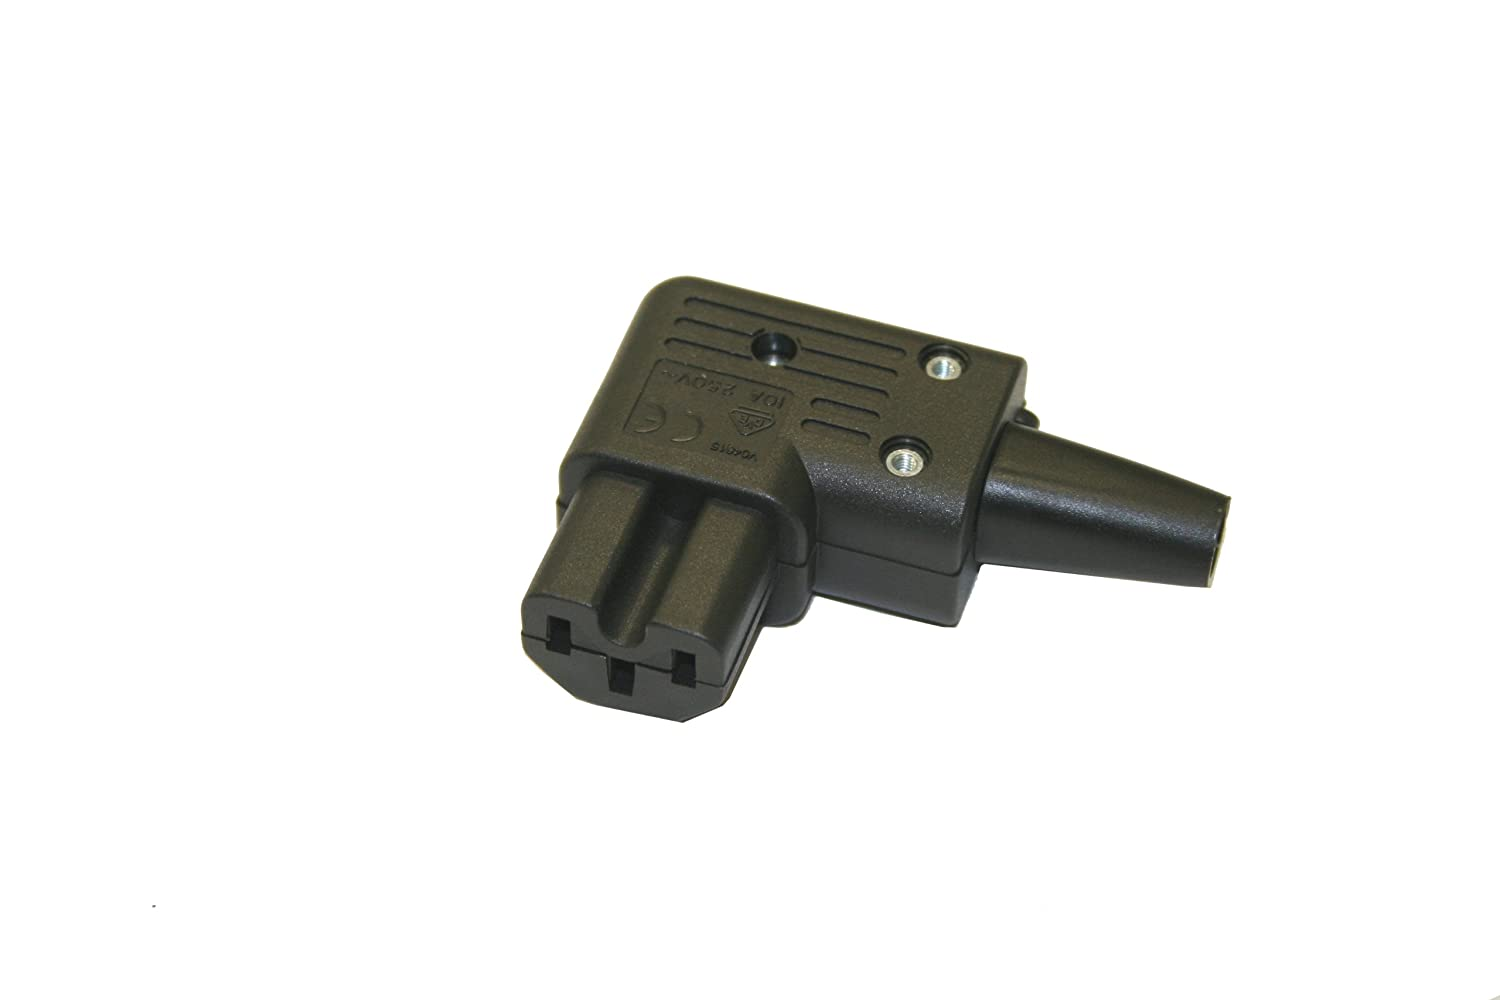 IBX-35693 C14 to Angled C15 Power Cords Left Angle 18//3 AWG 10A//250V